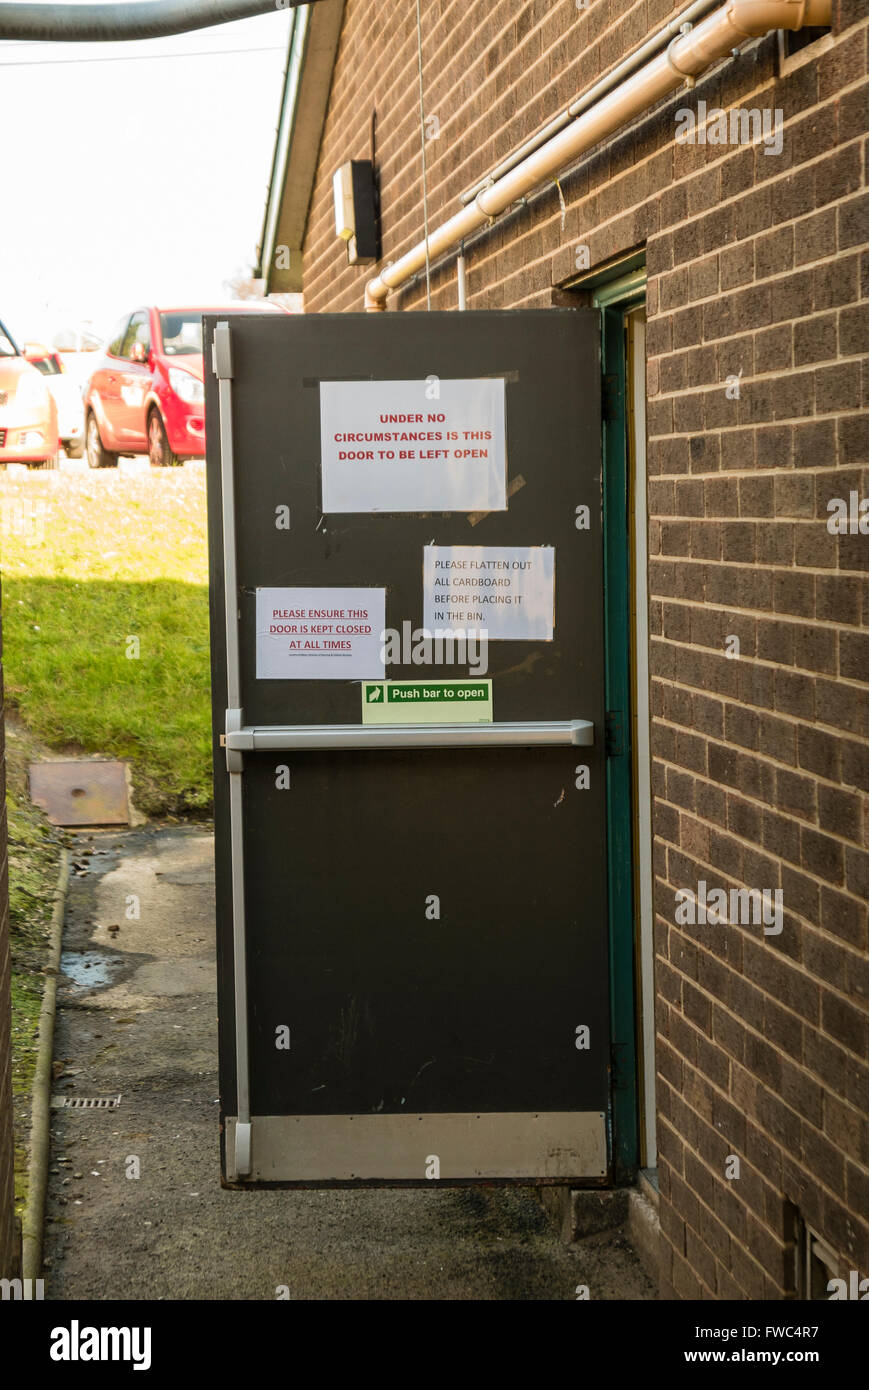 Emergency fire exit door left open on a building, despite signs warning that it should not be left open. Stock Photo